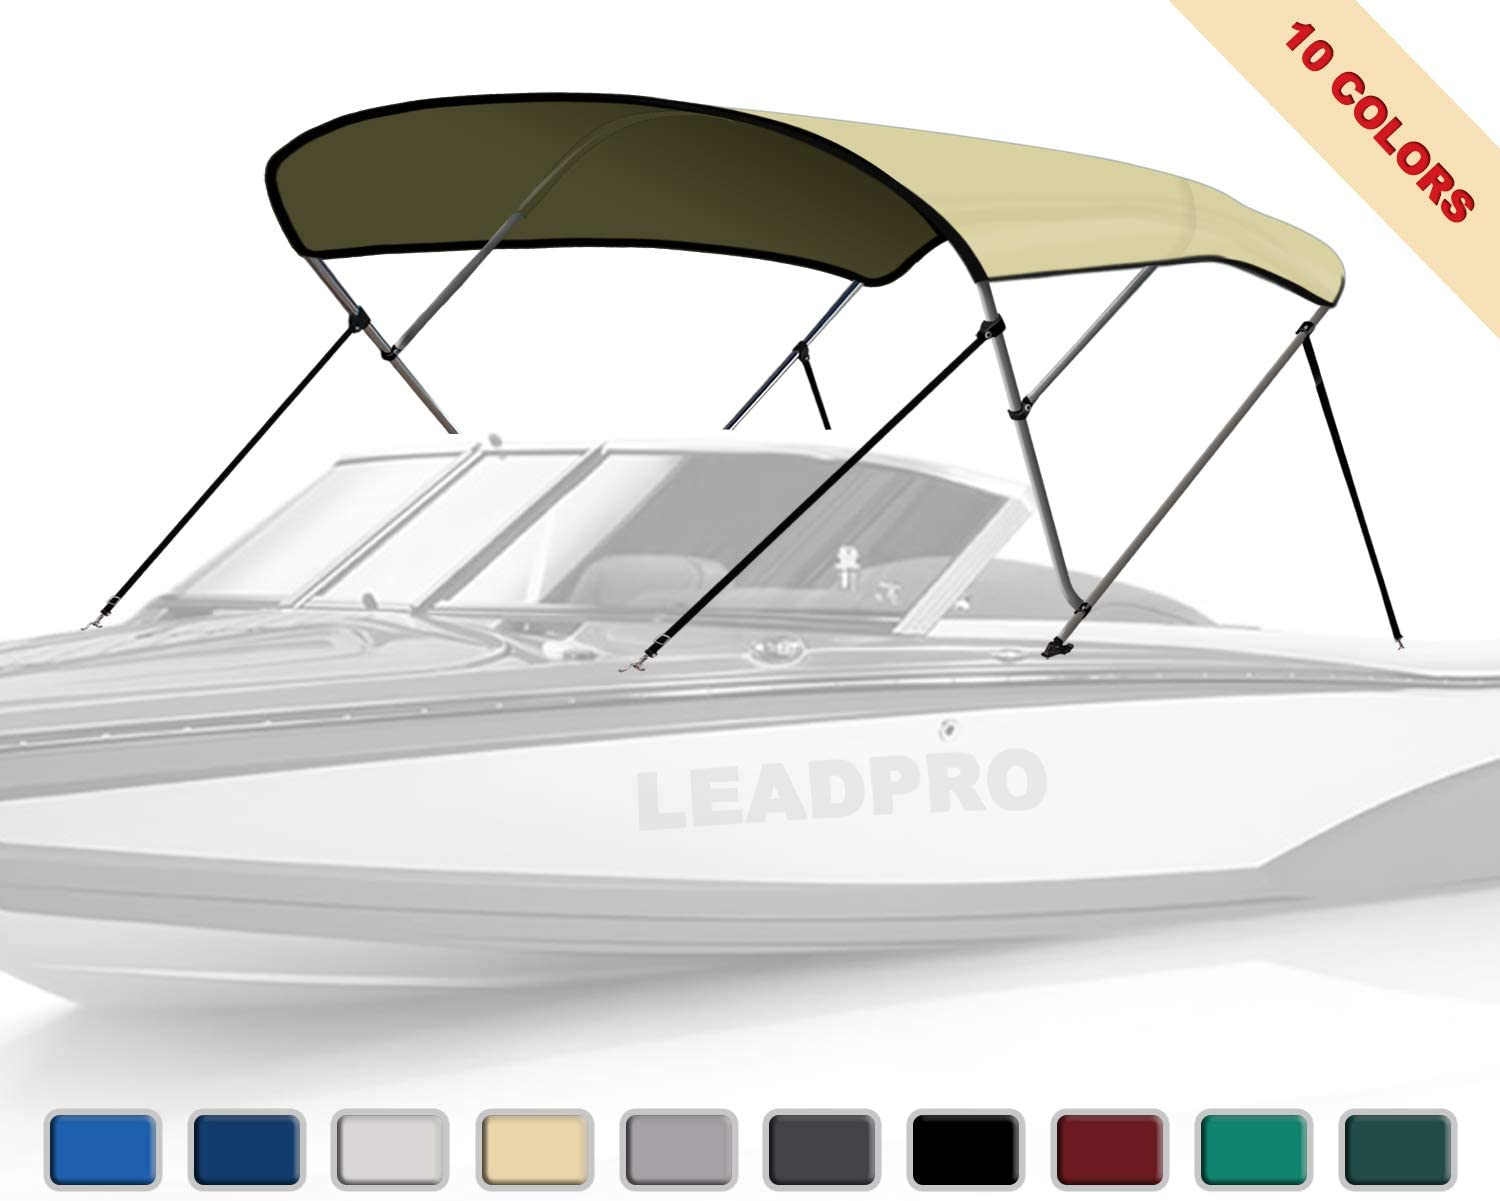 "W// BOOT /& REAR POLES 96/""W BIMINI TOP BOAT COVER TEAL 3 BOW 72/""L 54/""H 91/"""